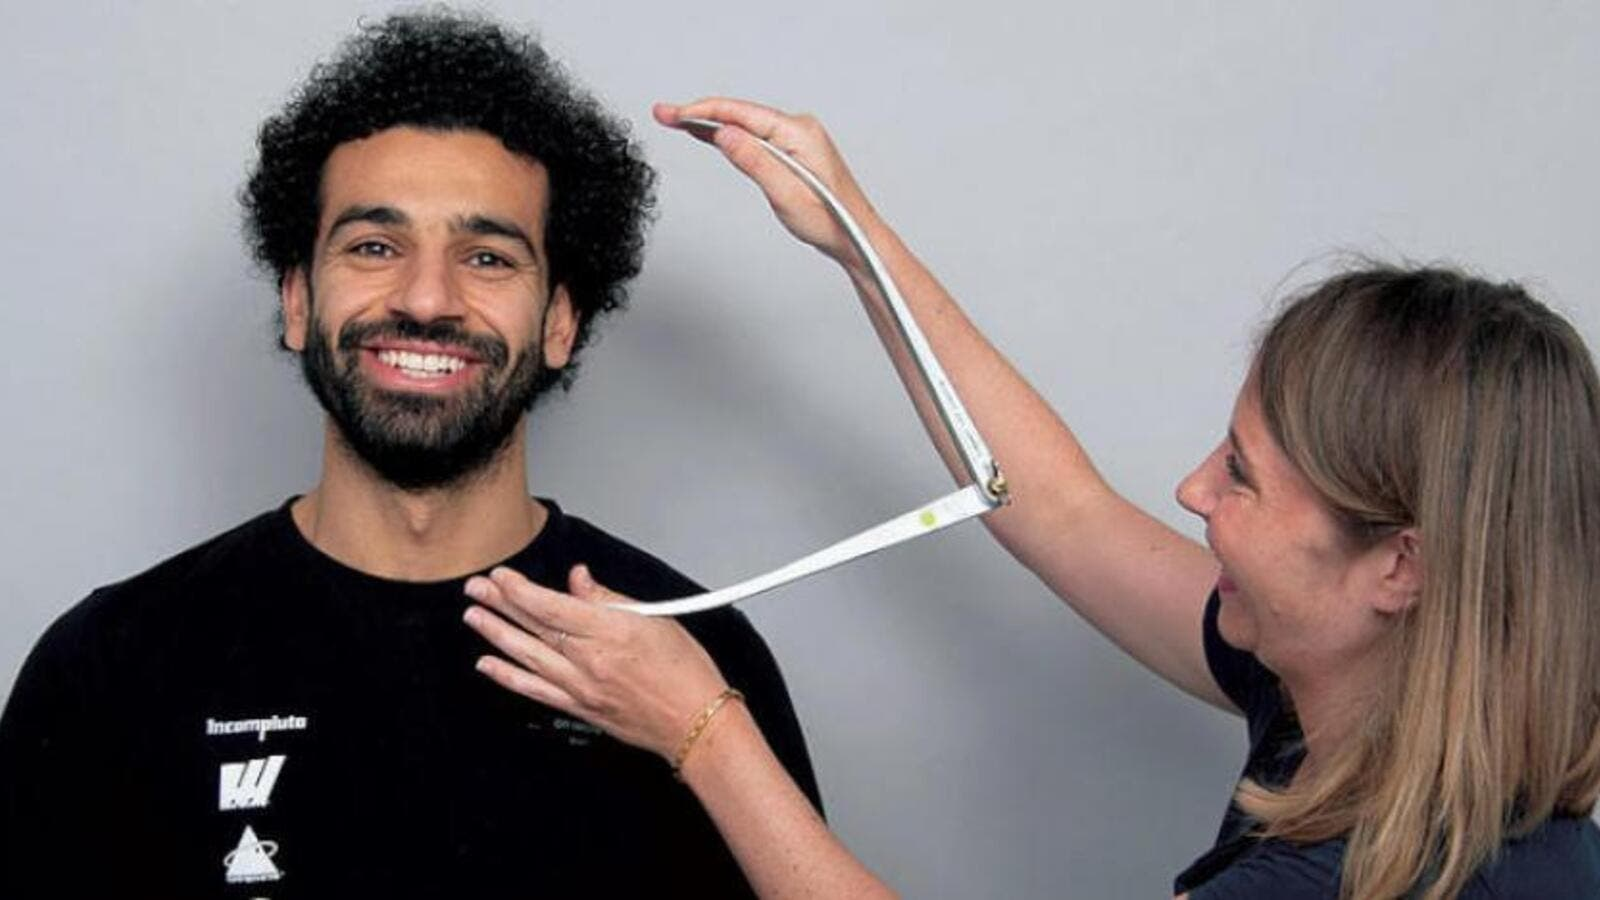 Egypt's Mohamed Salah in London taking several measurements for his wax sculpture. Madame Tussauds